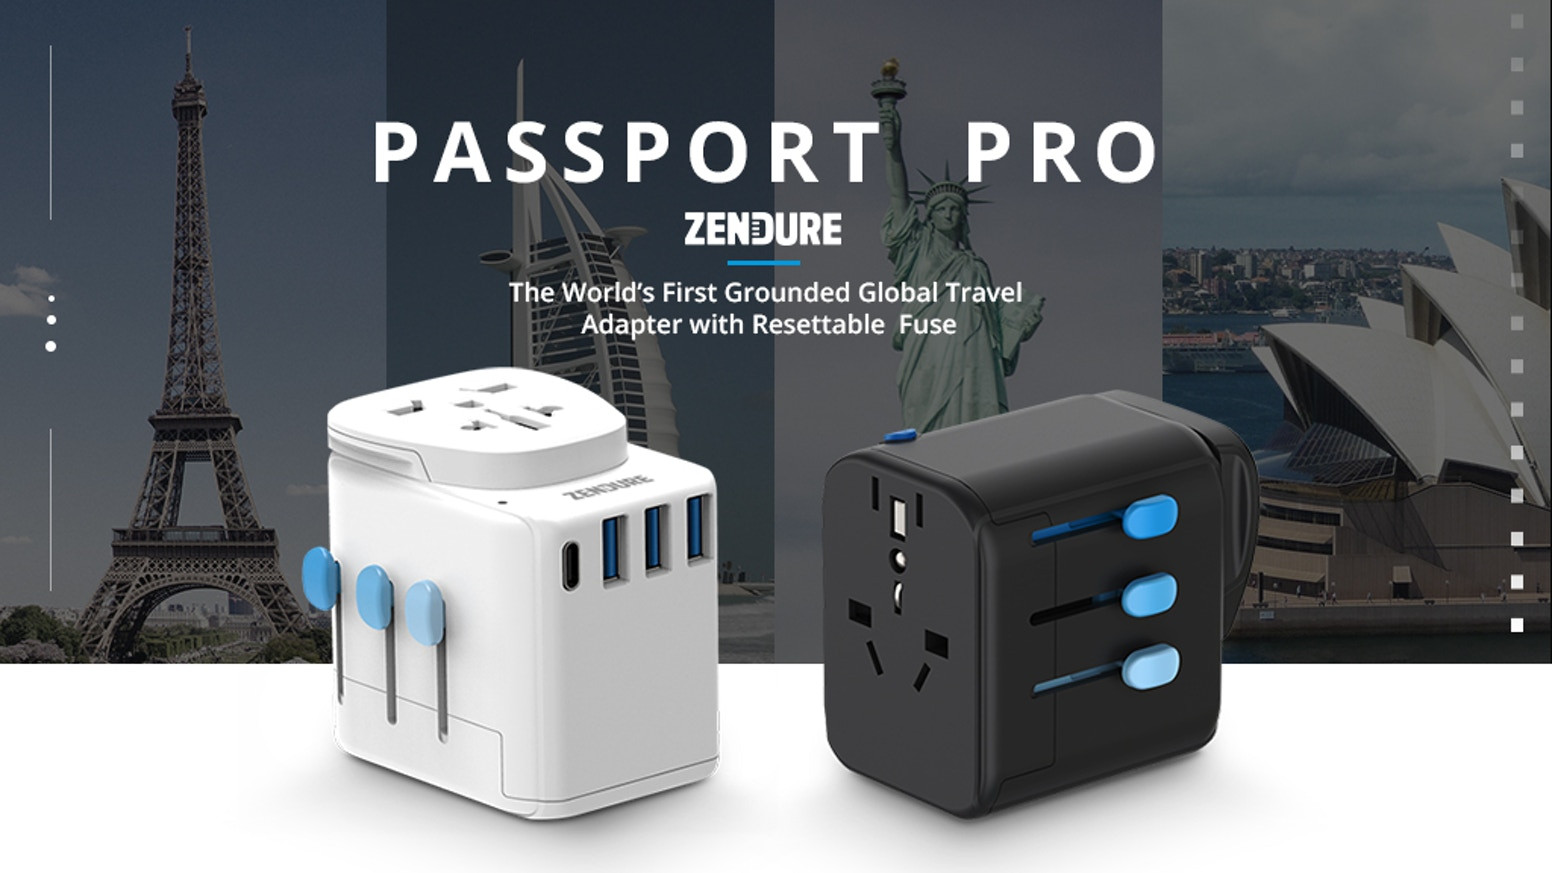 World's 1st Resettable Grounded Travel Adapter with USB-C PD Fast Charging for all your travel essentials i.e. iPhone X, MacBook, etc.